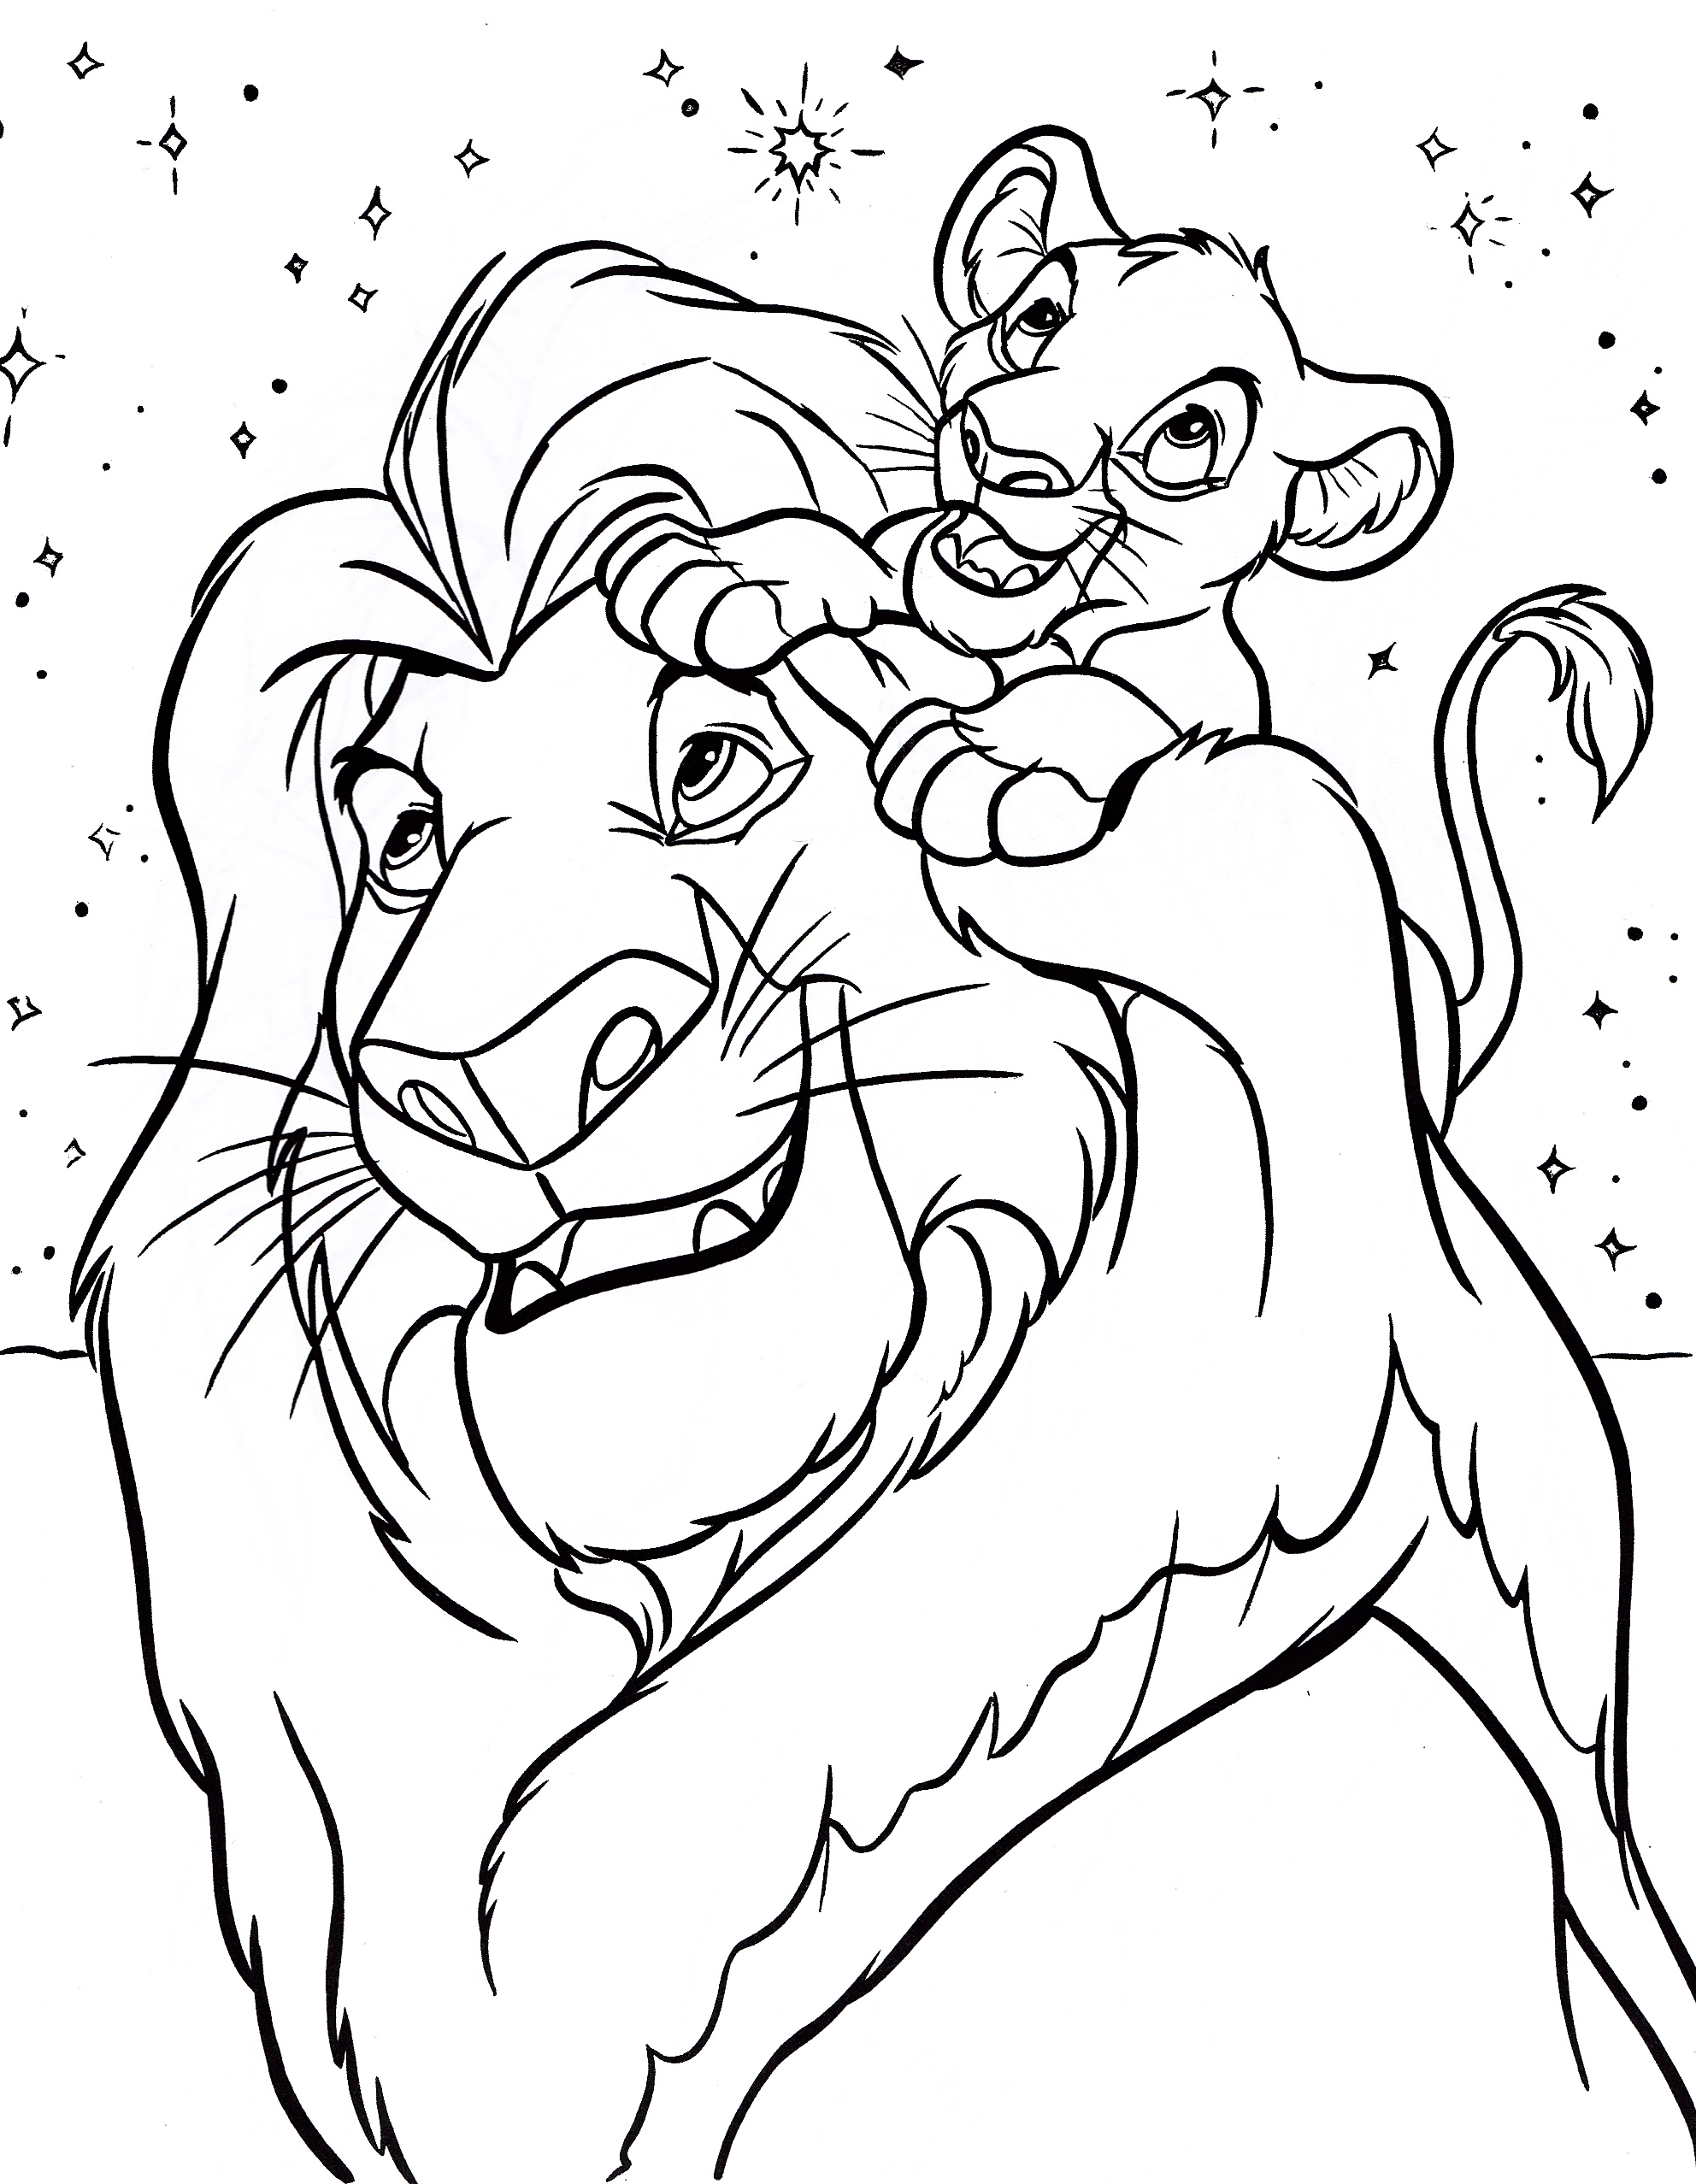 Adult Best Disney Color Pages Free Gallery Images best disney coloring pages 10 kids images